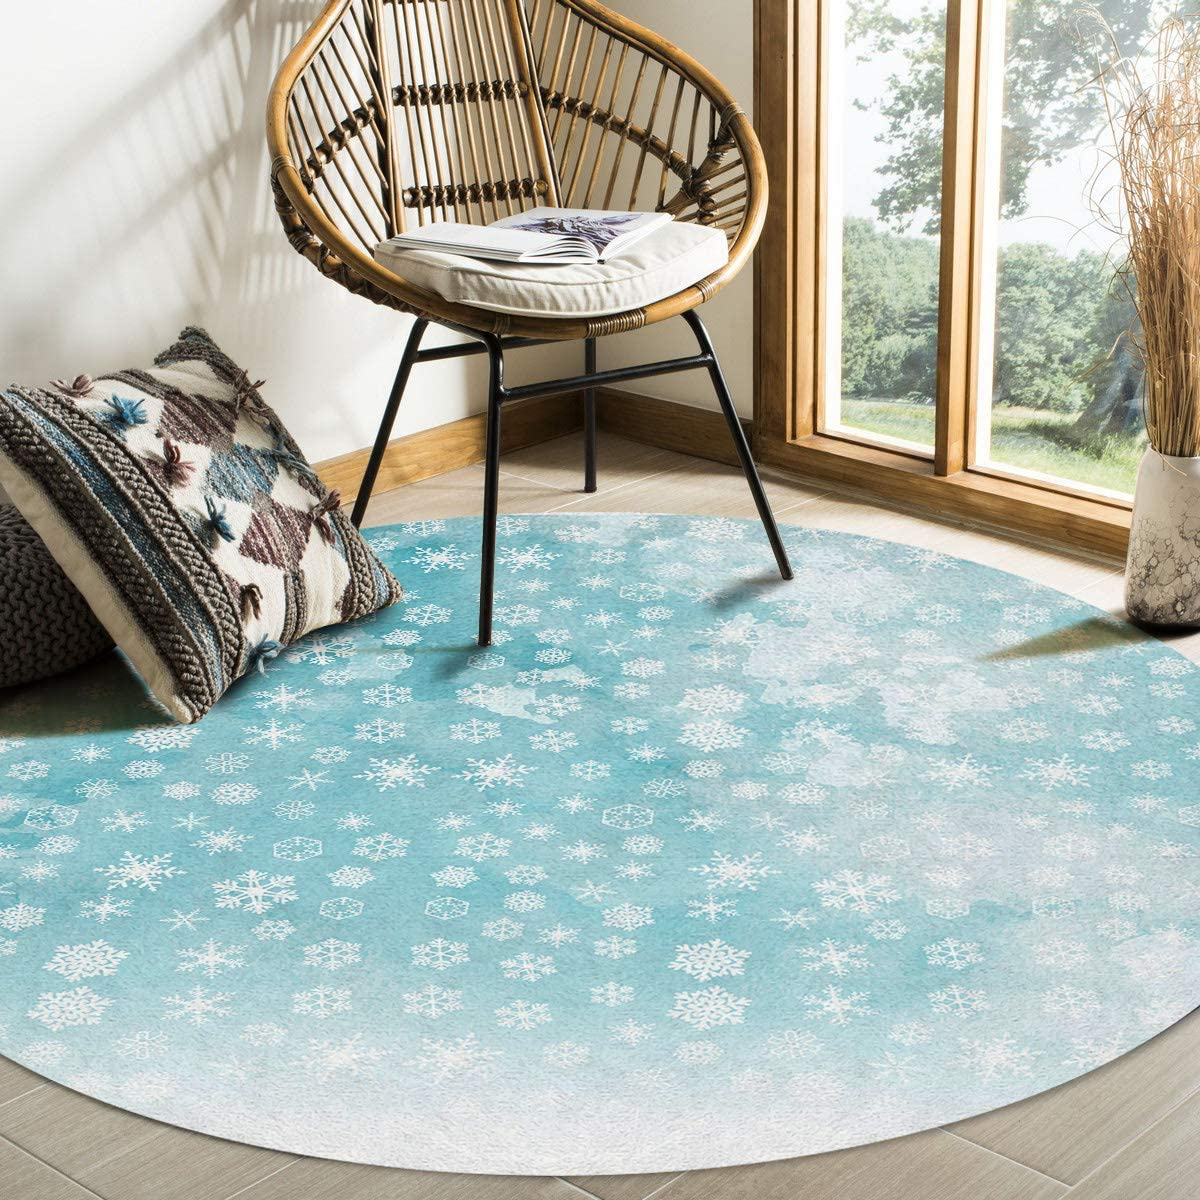 Super sale Modern Round Area Safety and trust Rug 5 for Bedroom Low-Profi Feet Non-Shedding